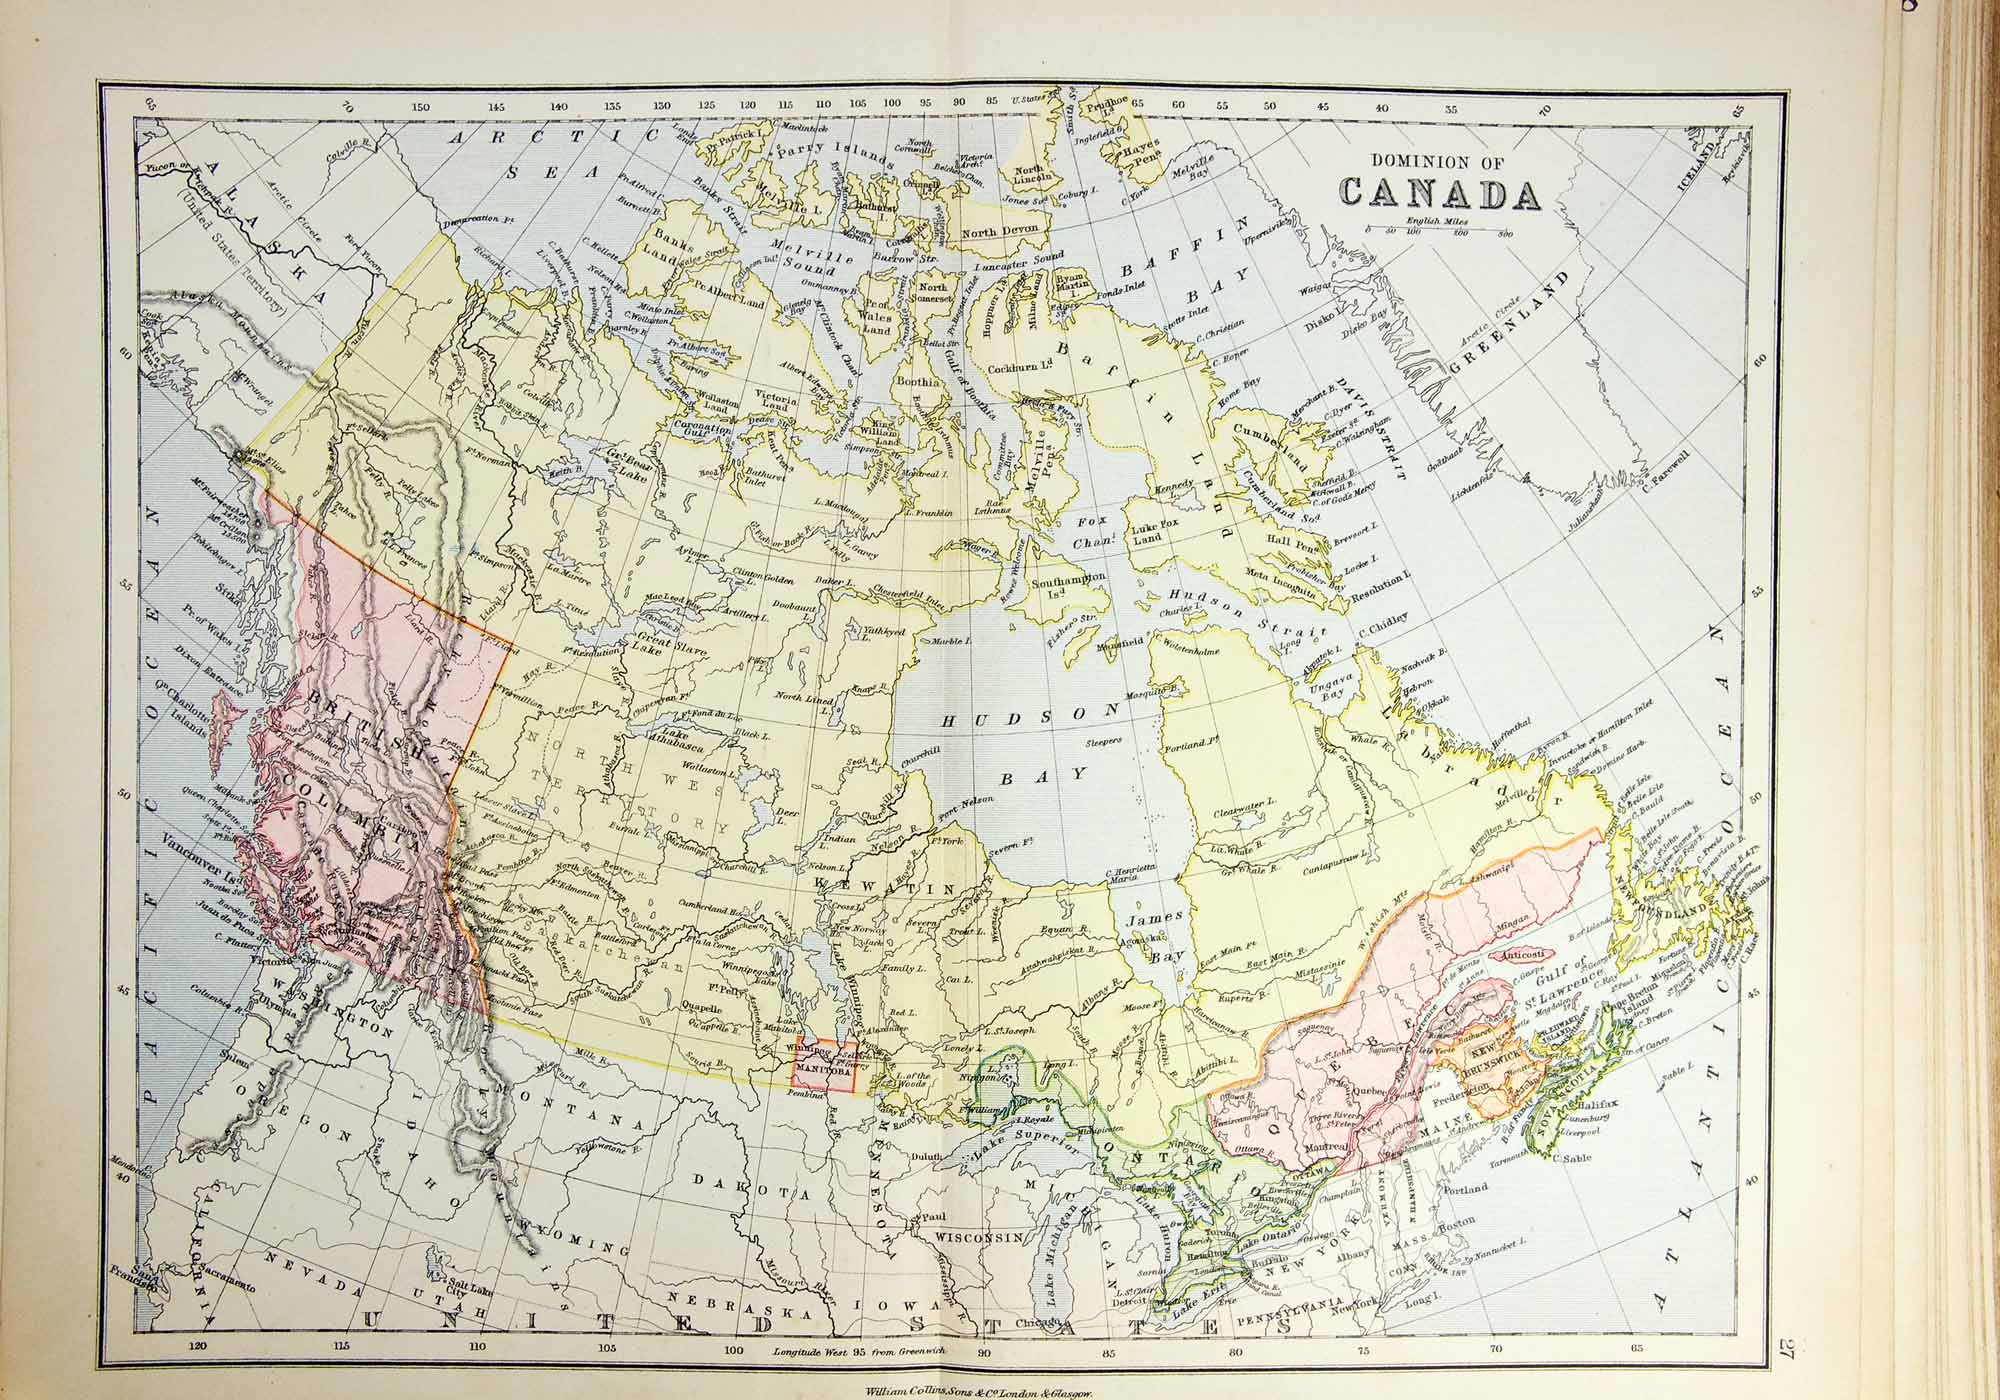 Historical map of Canada.